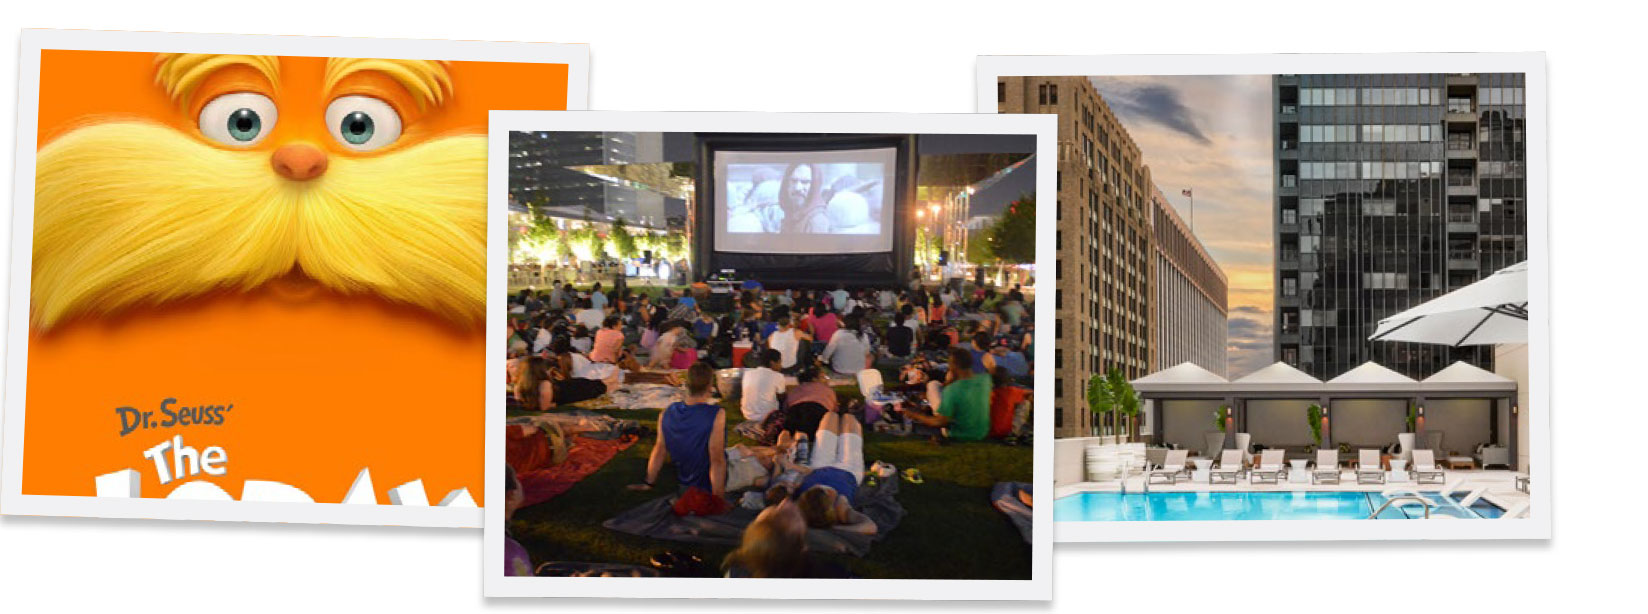 FROM LEFT TO RIGHT: SUMMER KIDS FILM FEST, KLYDE WARREN PARK SUMMER MOVIE SERIES, SUMMER CINEMA SERIES AT POOL ADOLPHUS